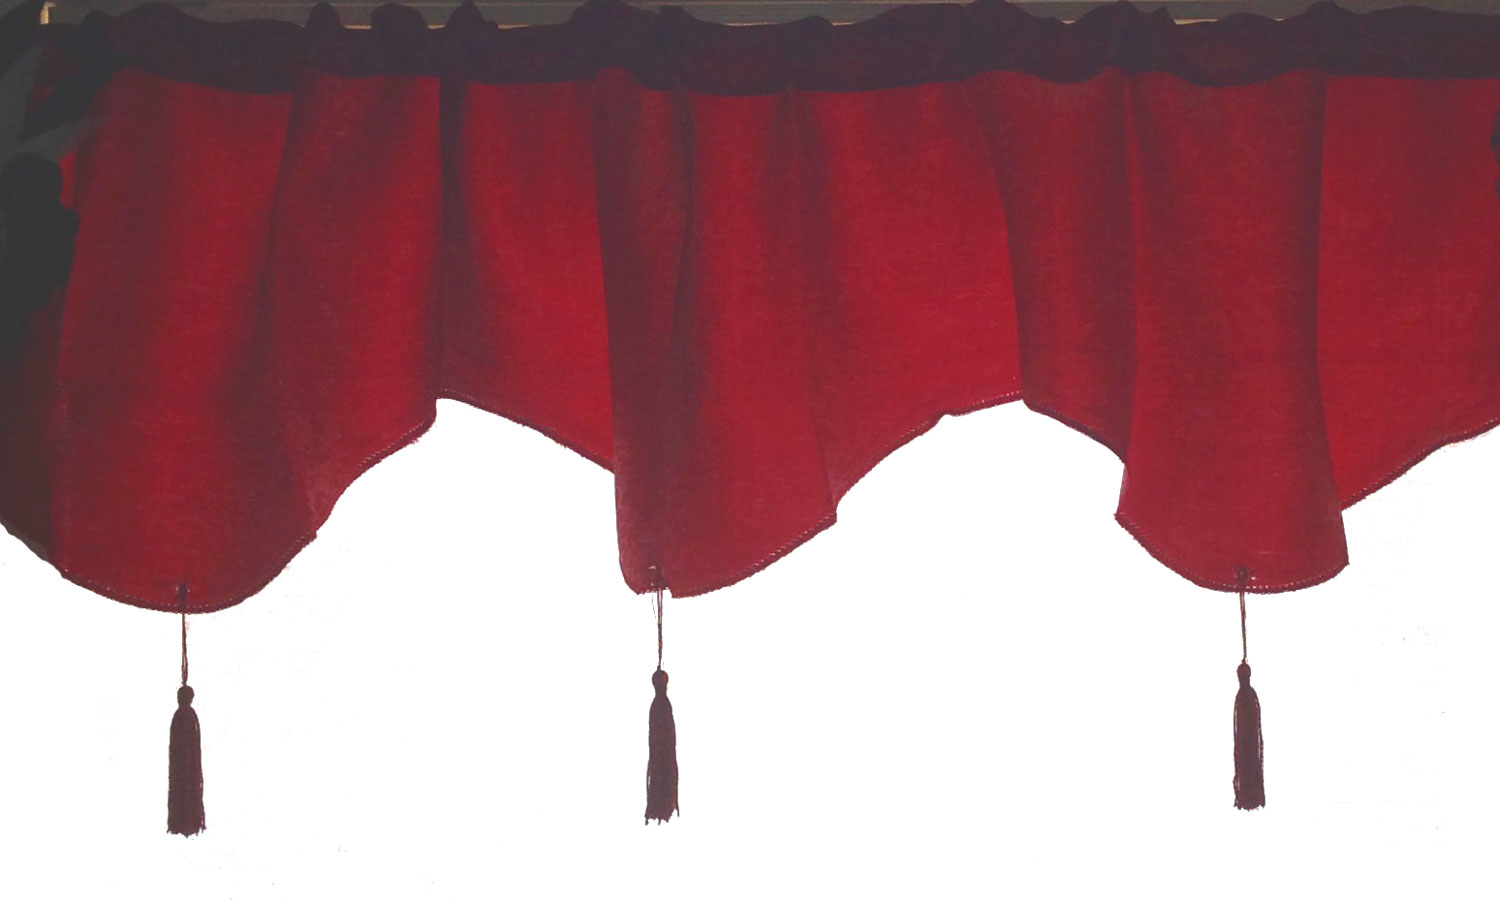 gothic-decor-black-window-valance-curtain-halloween-decoration